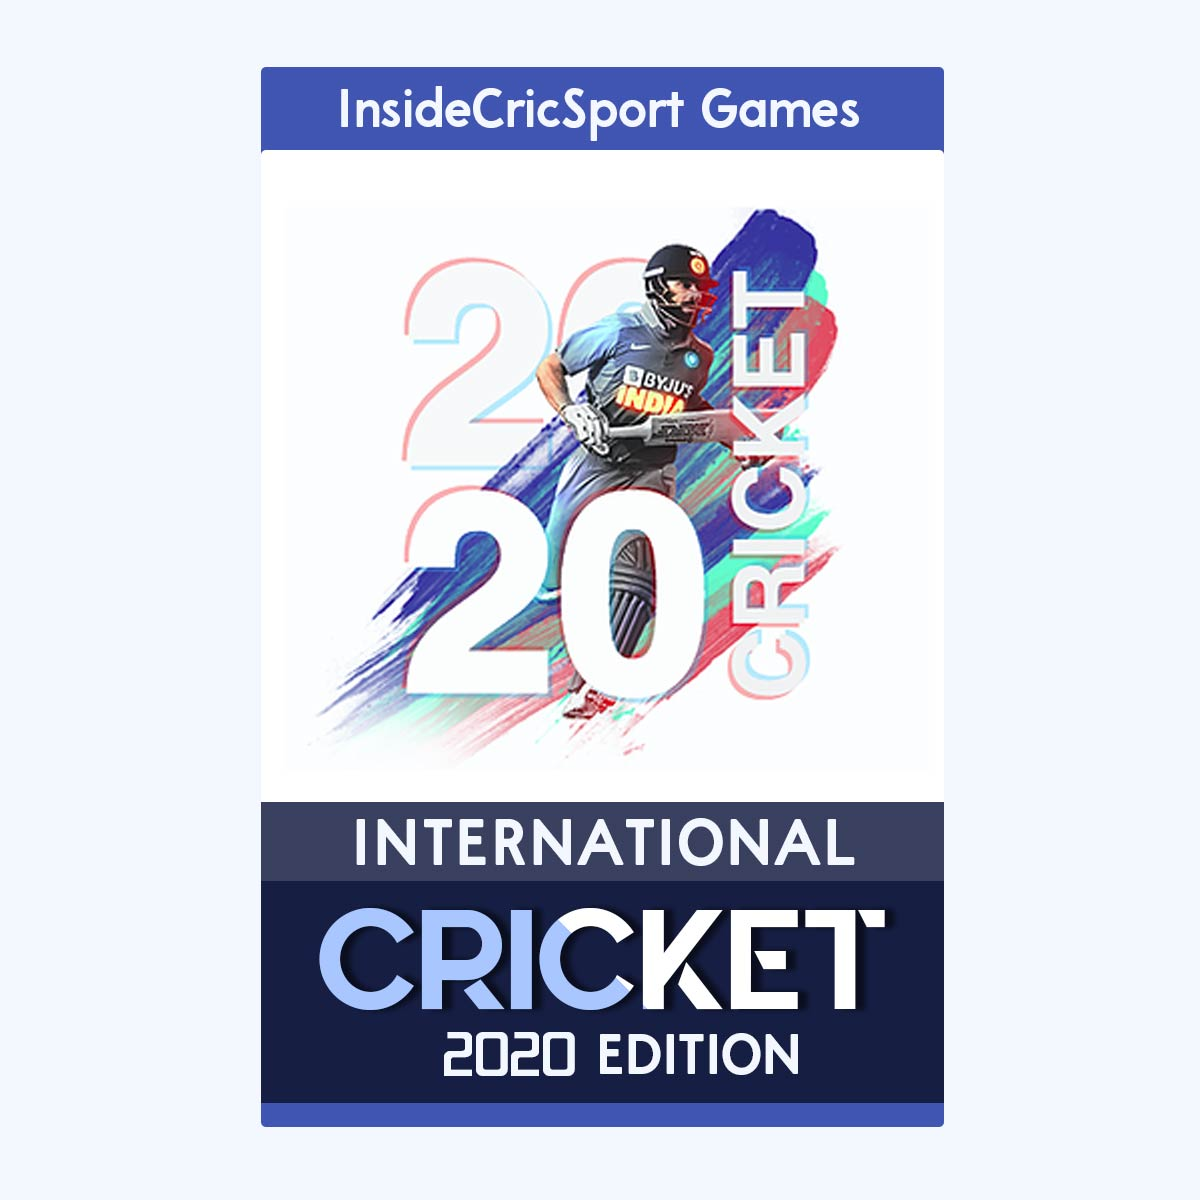 The-International-Cricket-2020-Game